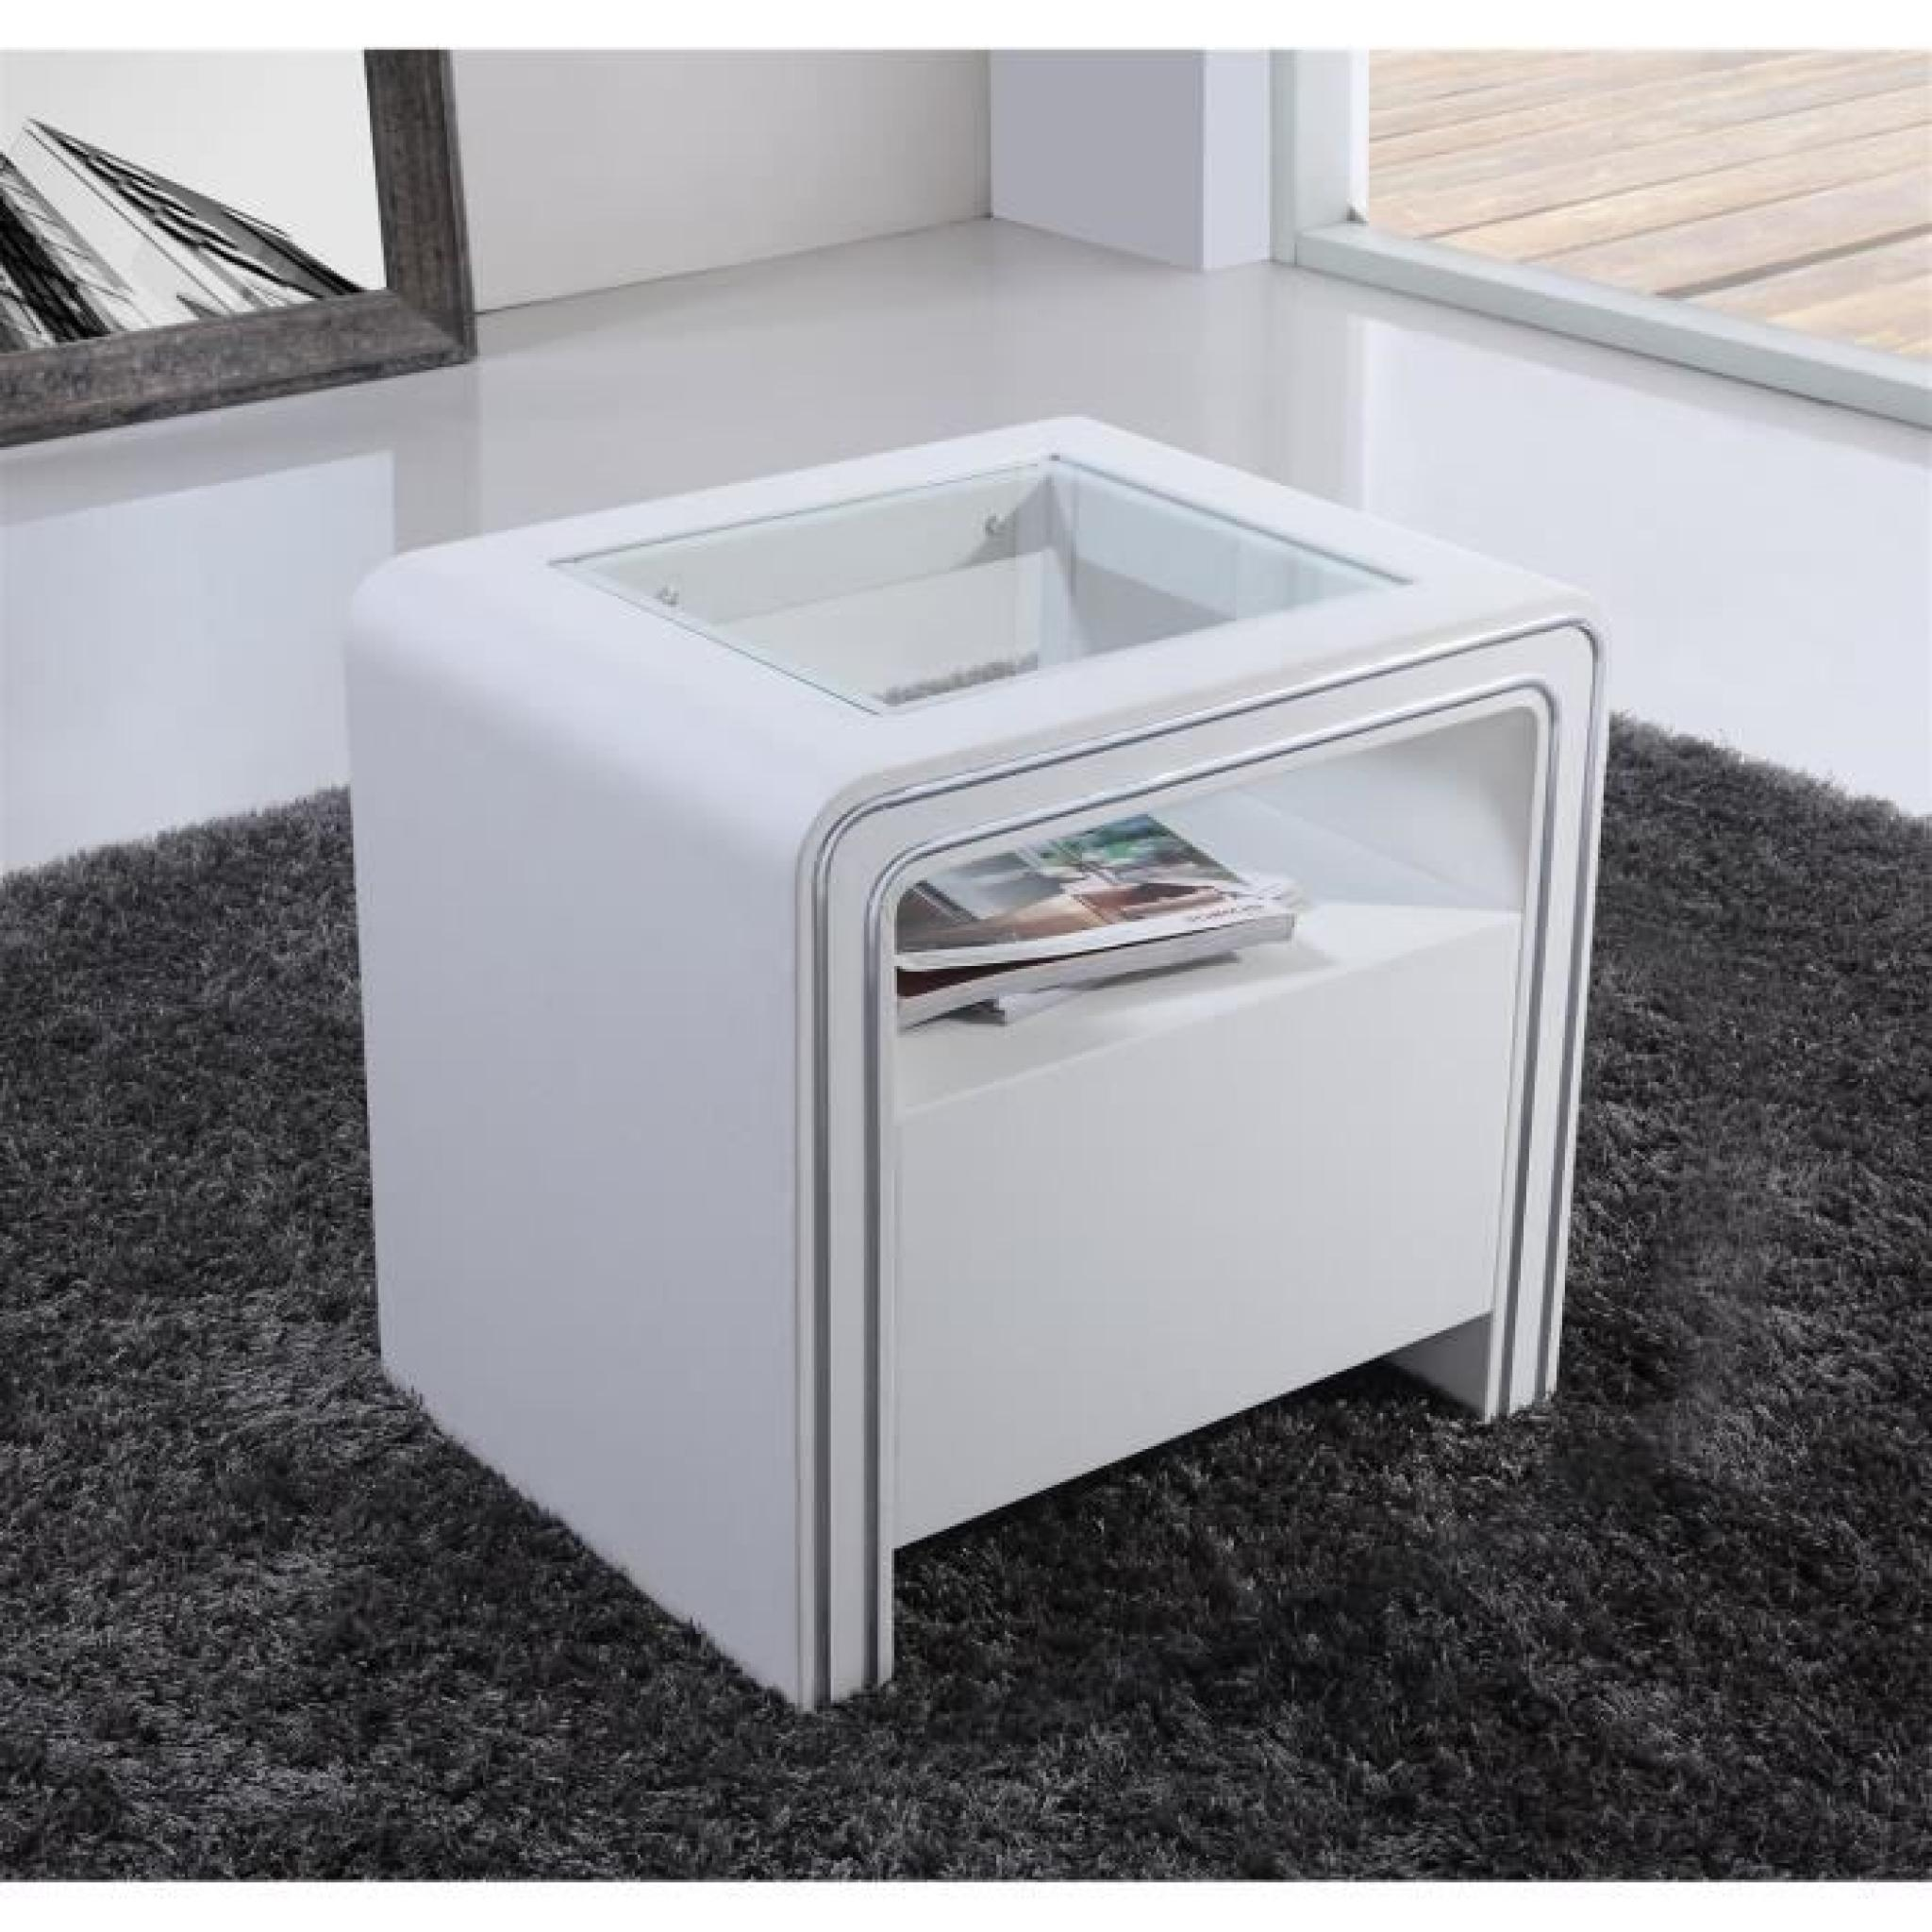 Table de chevet s85 blanc simili cuir achat vente table de chevet pas cher - Table de chevet simili cuir ...